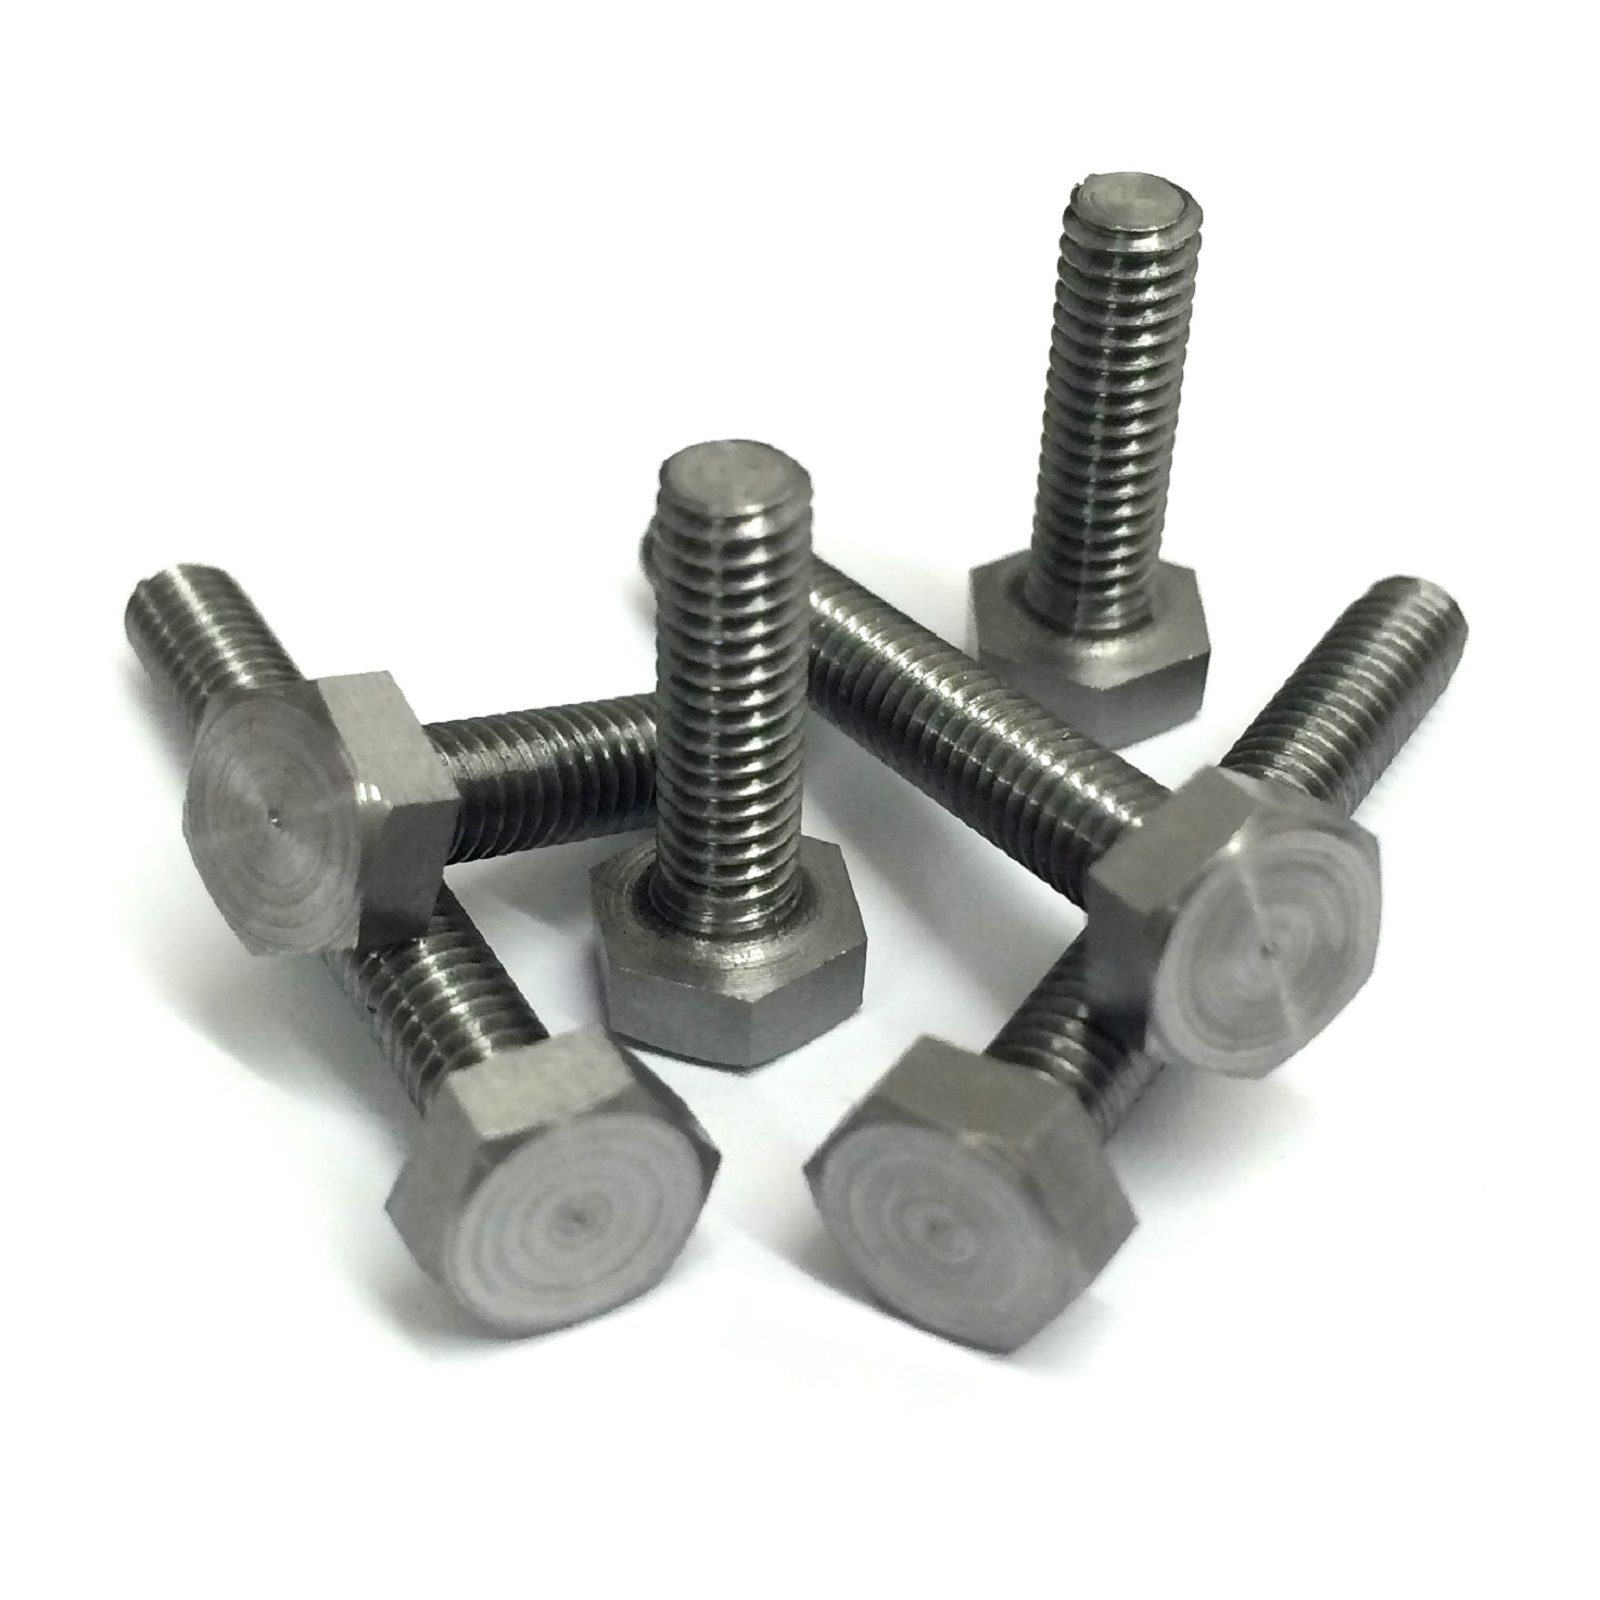 global bolts market 2018 fastenal kamax arconic acument